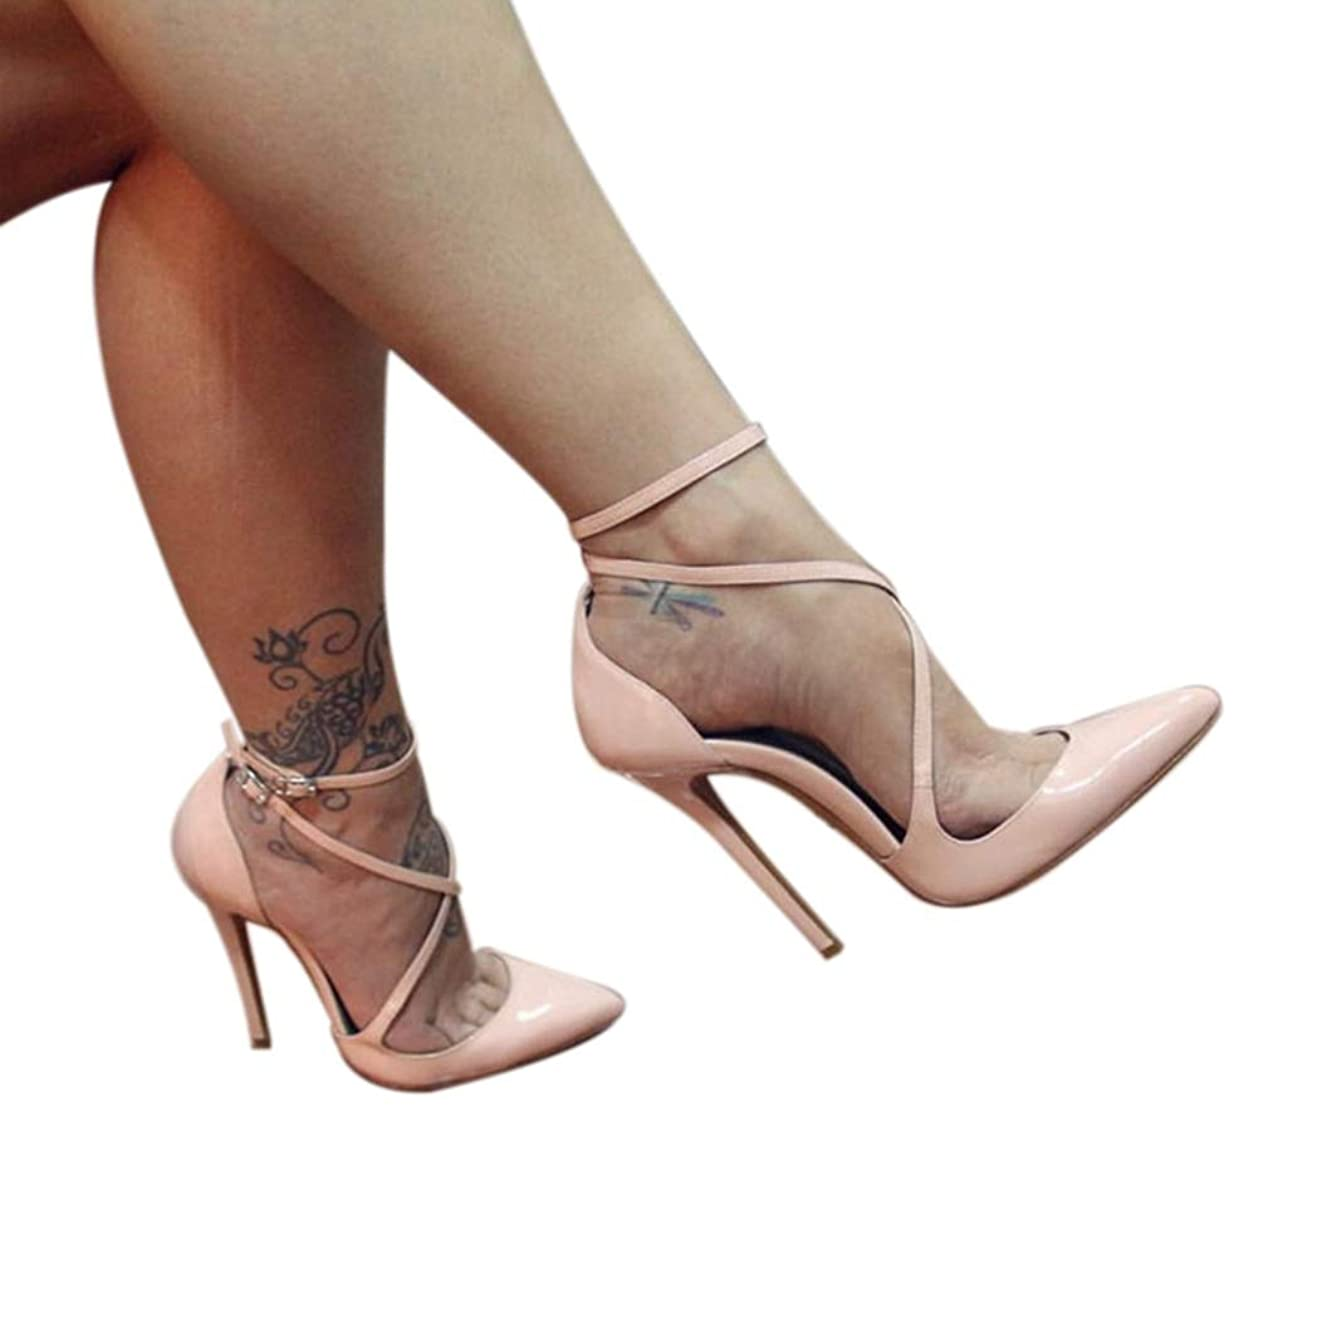 ODOKAY Summer Sandal for Women Super High Strappy Pointed Open Toe Ankle Strap Stiletto Ladies Sandals